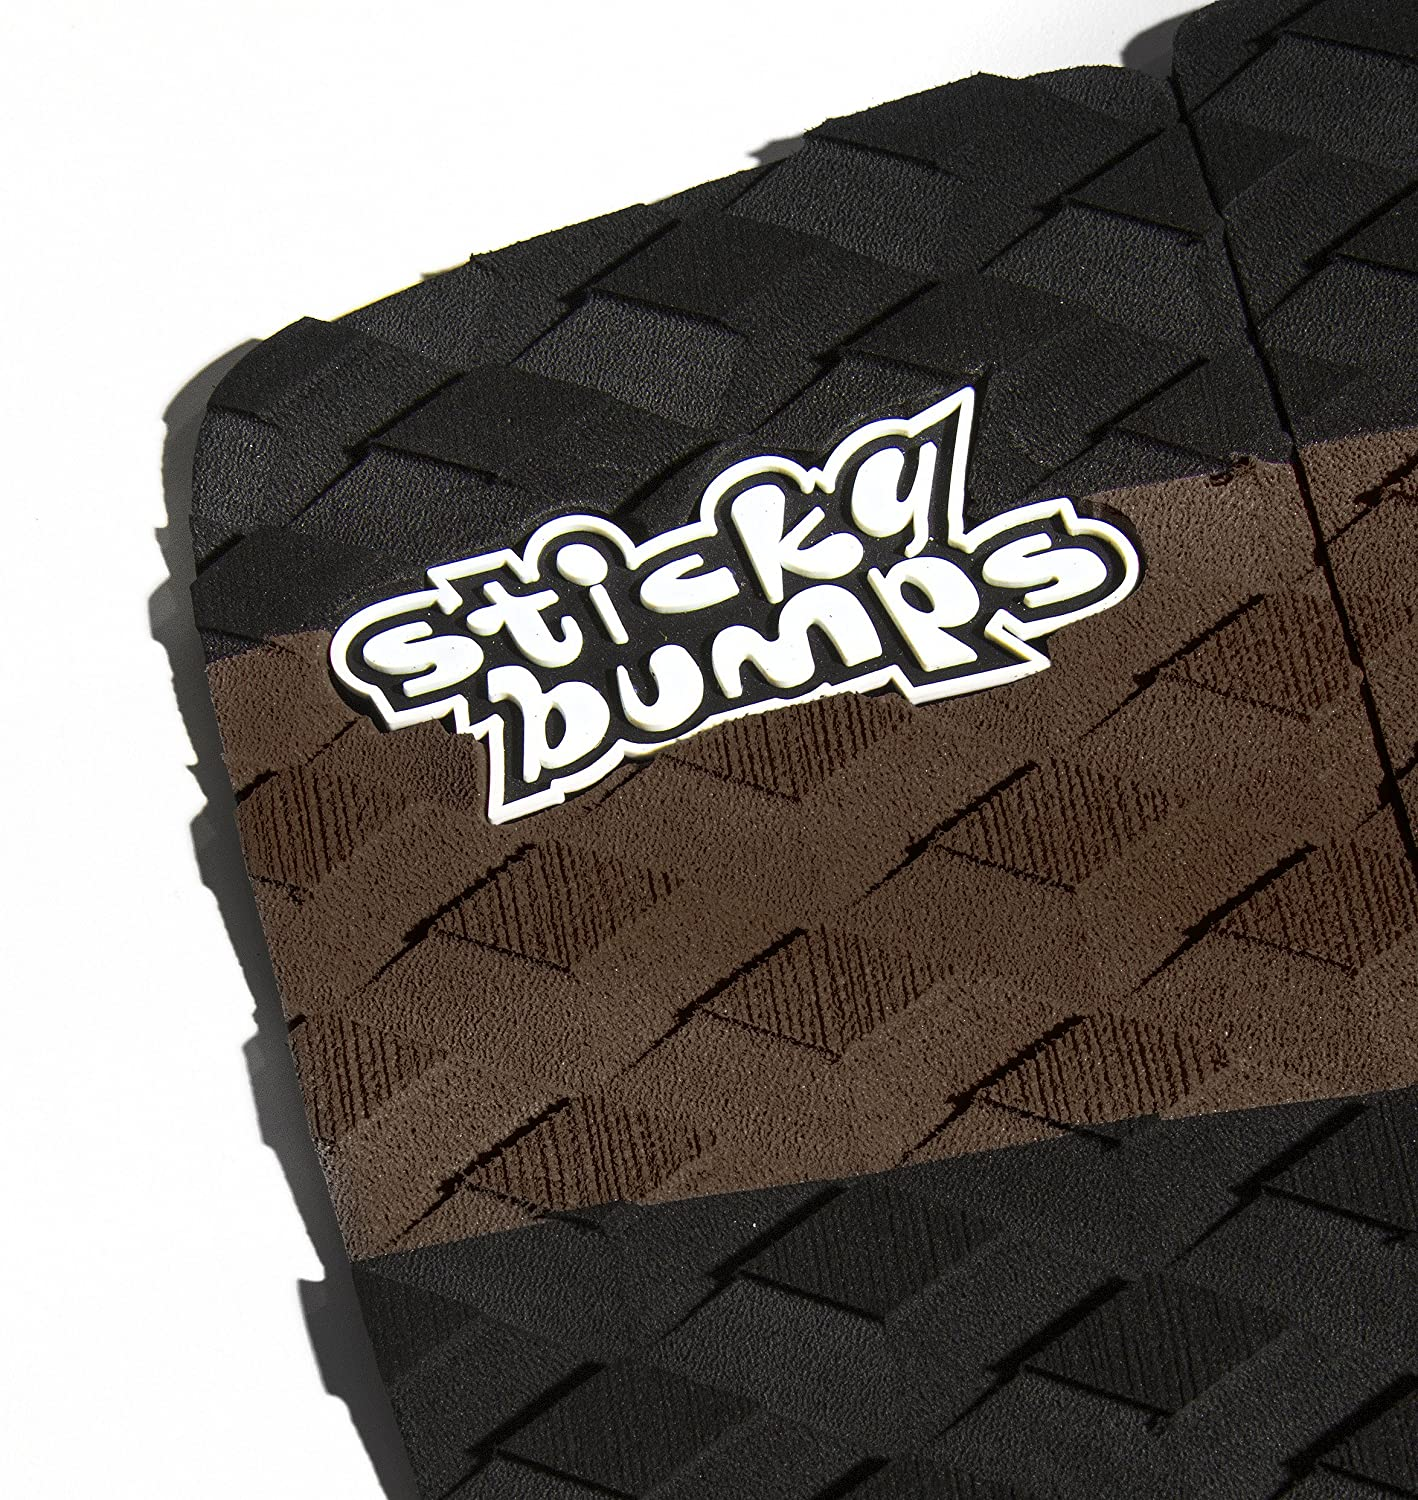 Sticky Bumps Traction The Stripe